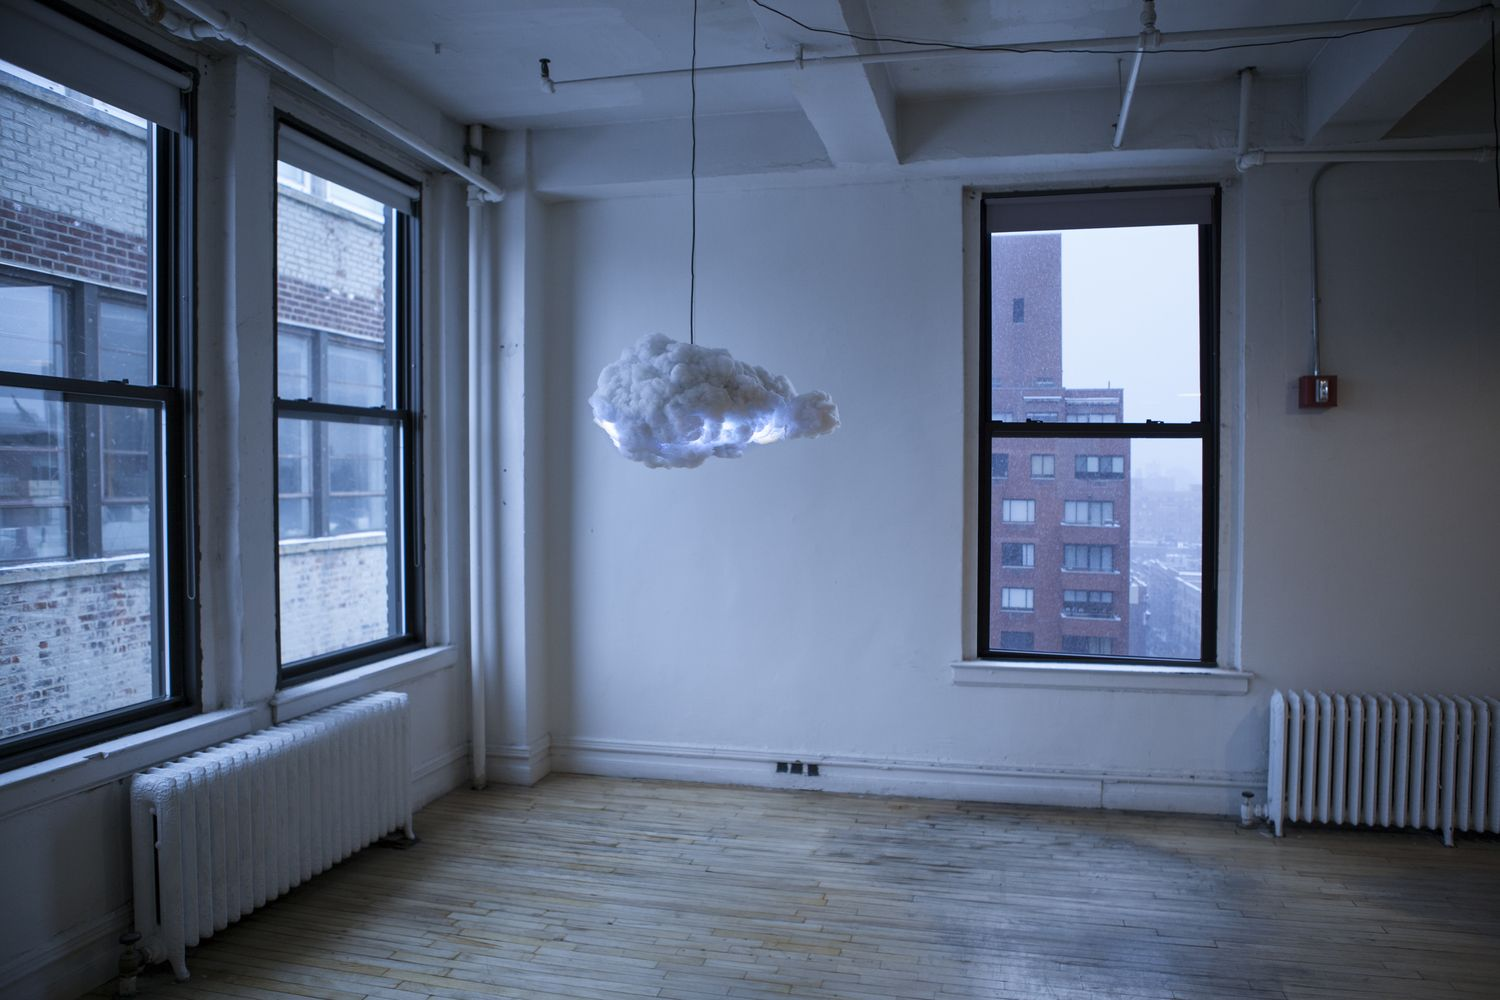 Cloud An Interactive Light Shaped Like A Cumulus Cloud That Simulates A Thunderstorm Both In Light And Sound Based Cloud Lamp Creative Lamps Chandelier Design